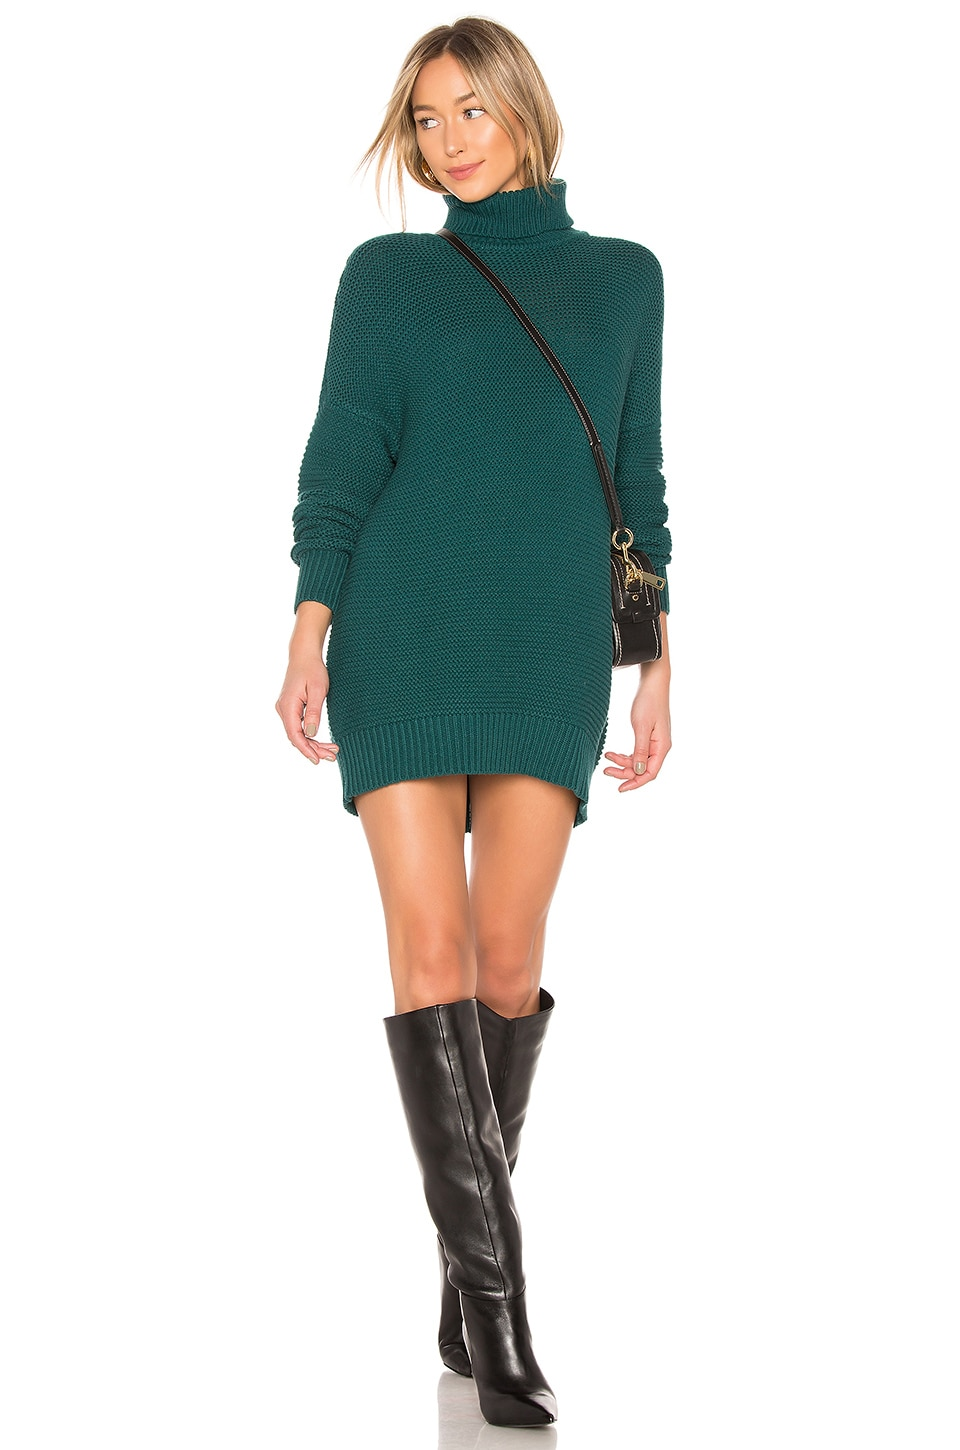 House of Harlow 1960 x REVOLVE Kason Sweater in Emerald